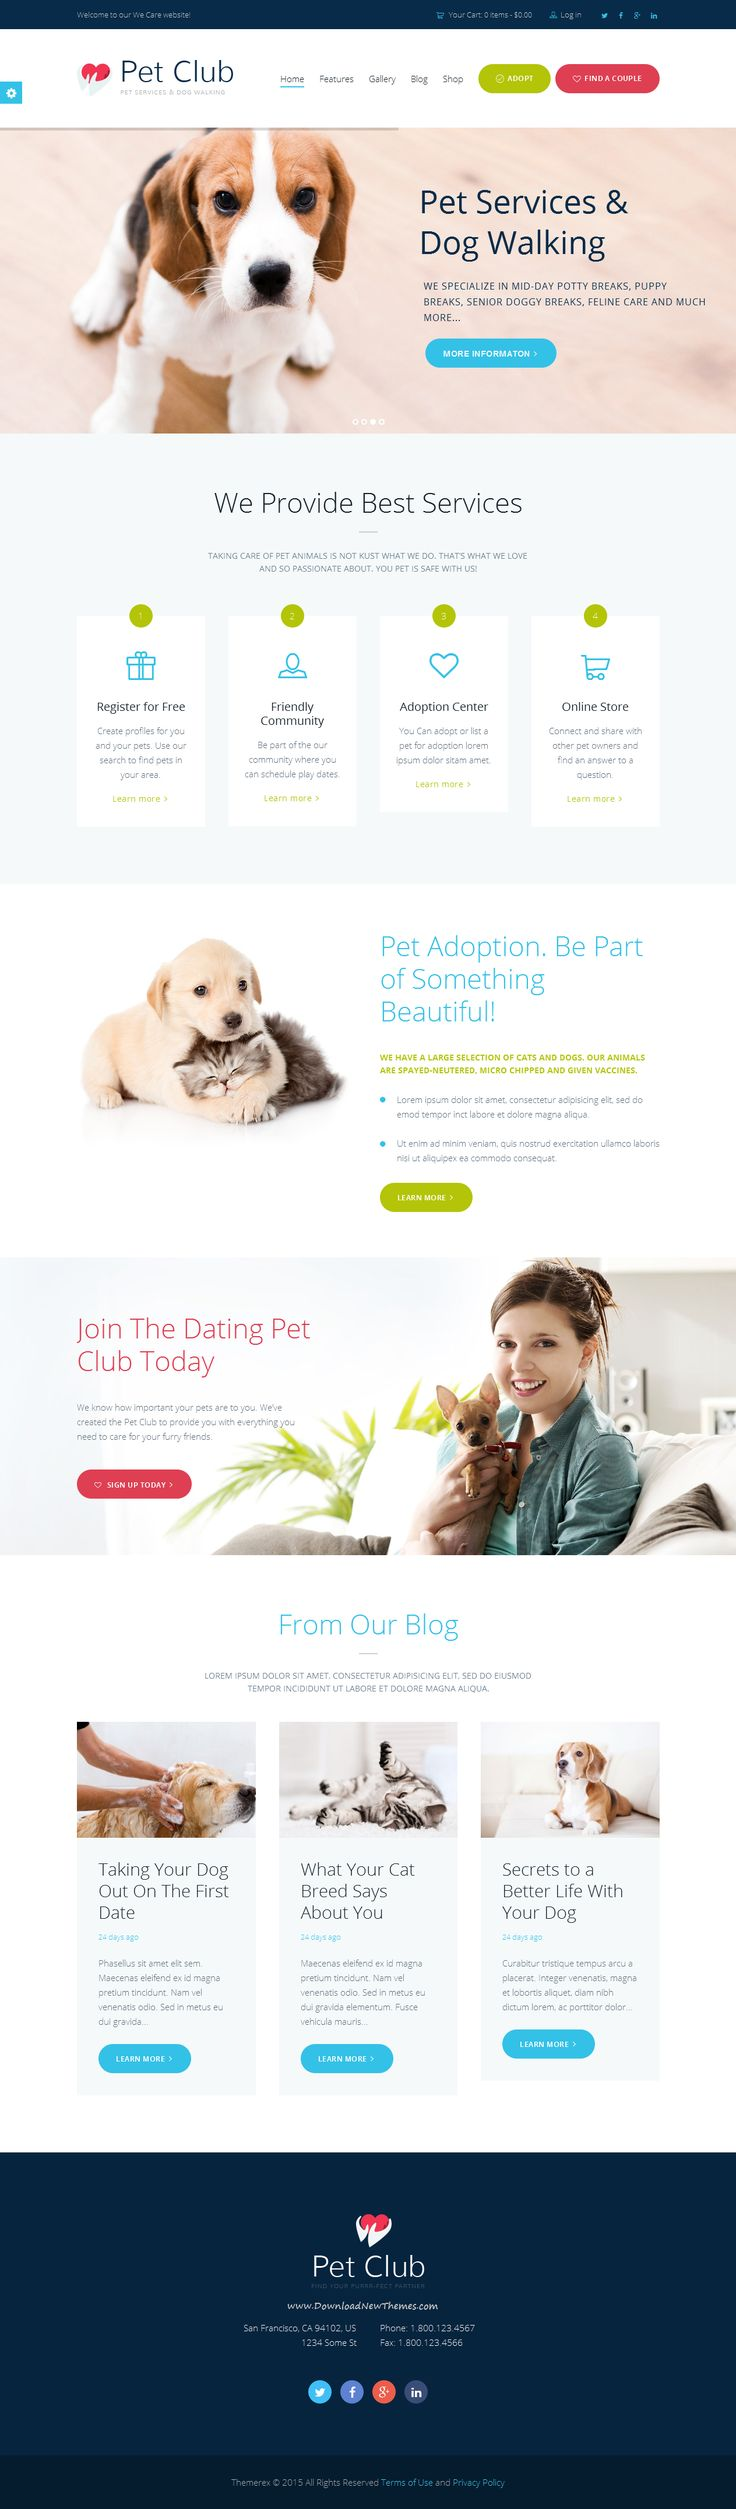 #Pet Club is an ideal WordPress theme if you seek to build a #website for pet store, veterinary clinic, dog training classes, animal shelters and pet hotels, dog / cat trainers, or pet caretakers, as well as adoption centers or animal community, including animal dating club! download now➯ http://themeforest.net/item/pet-club-services-adoption-dating-community/12949703?ref=Datasata